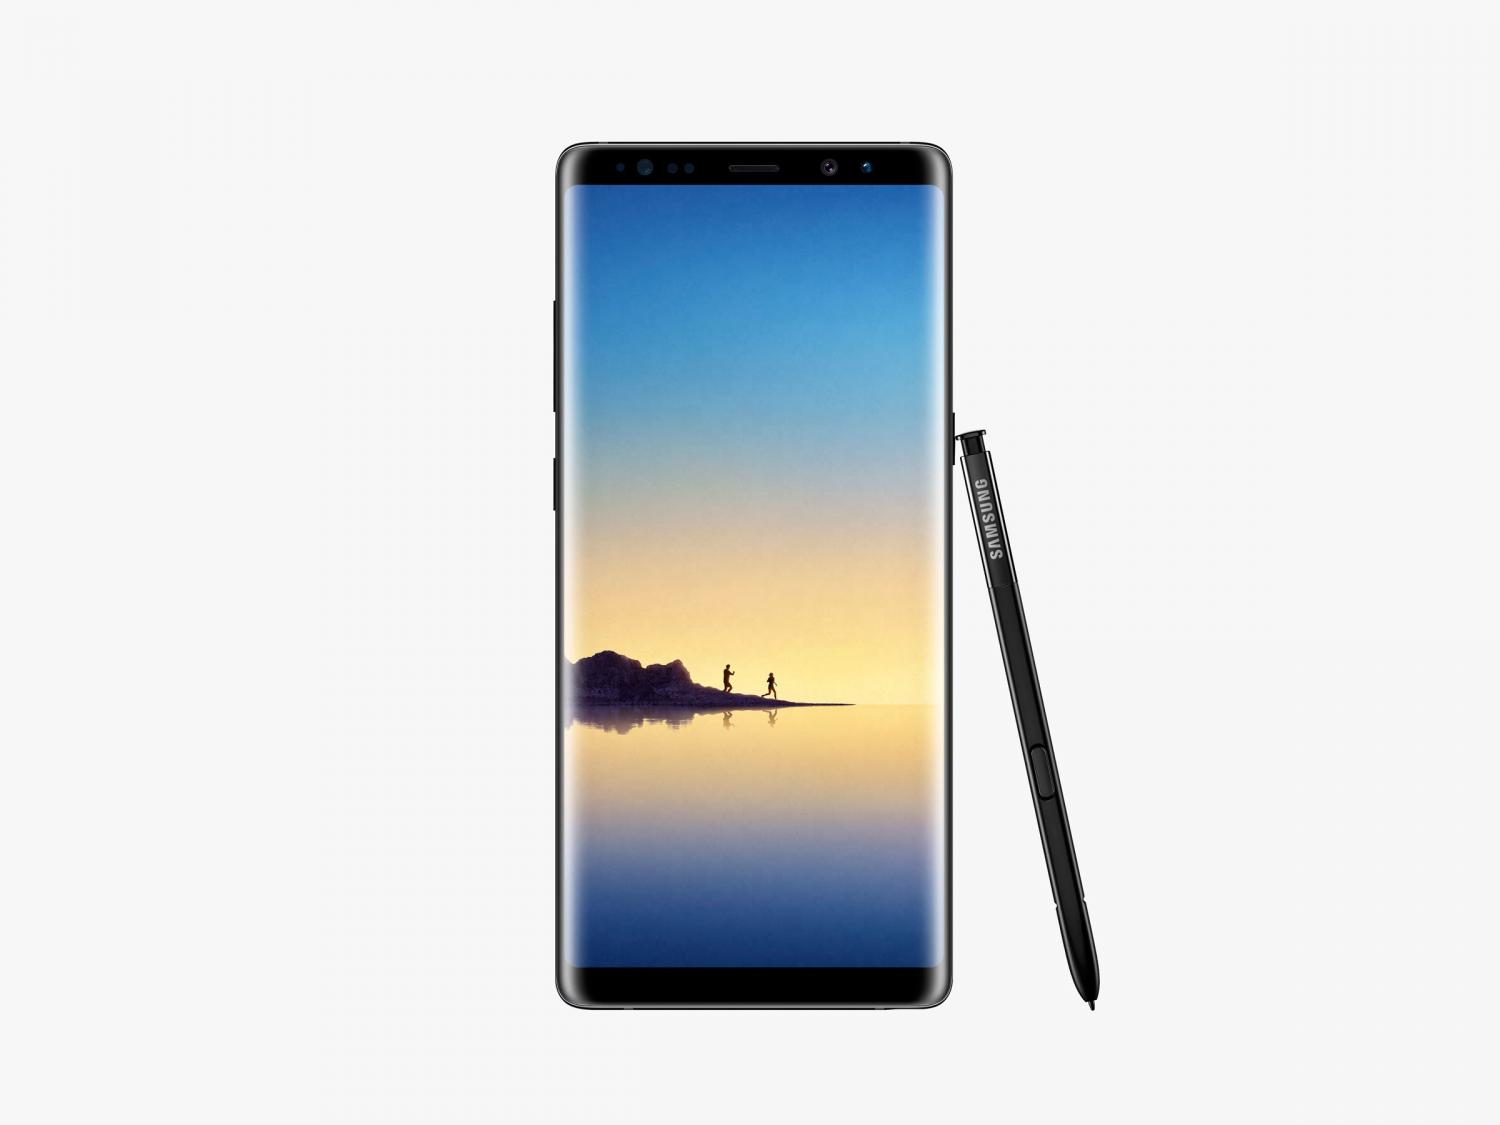 Samsung gives the Galaxy Note 8 more of the write stuff